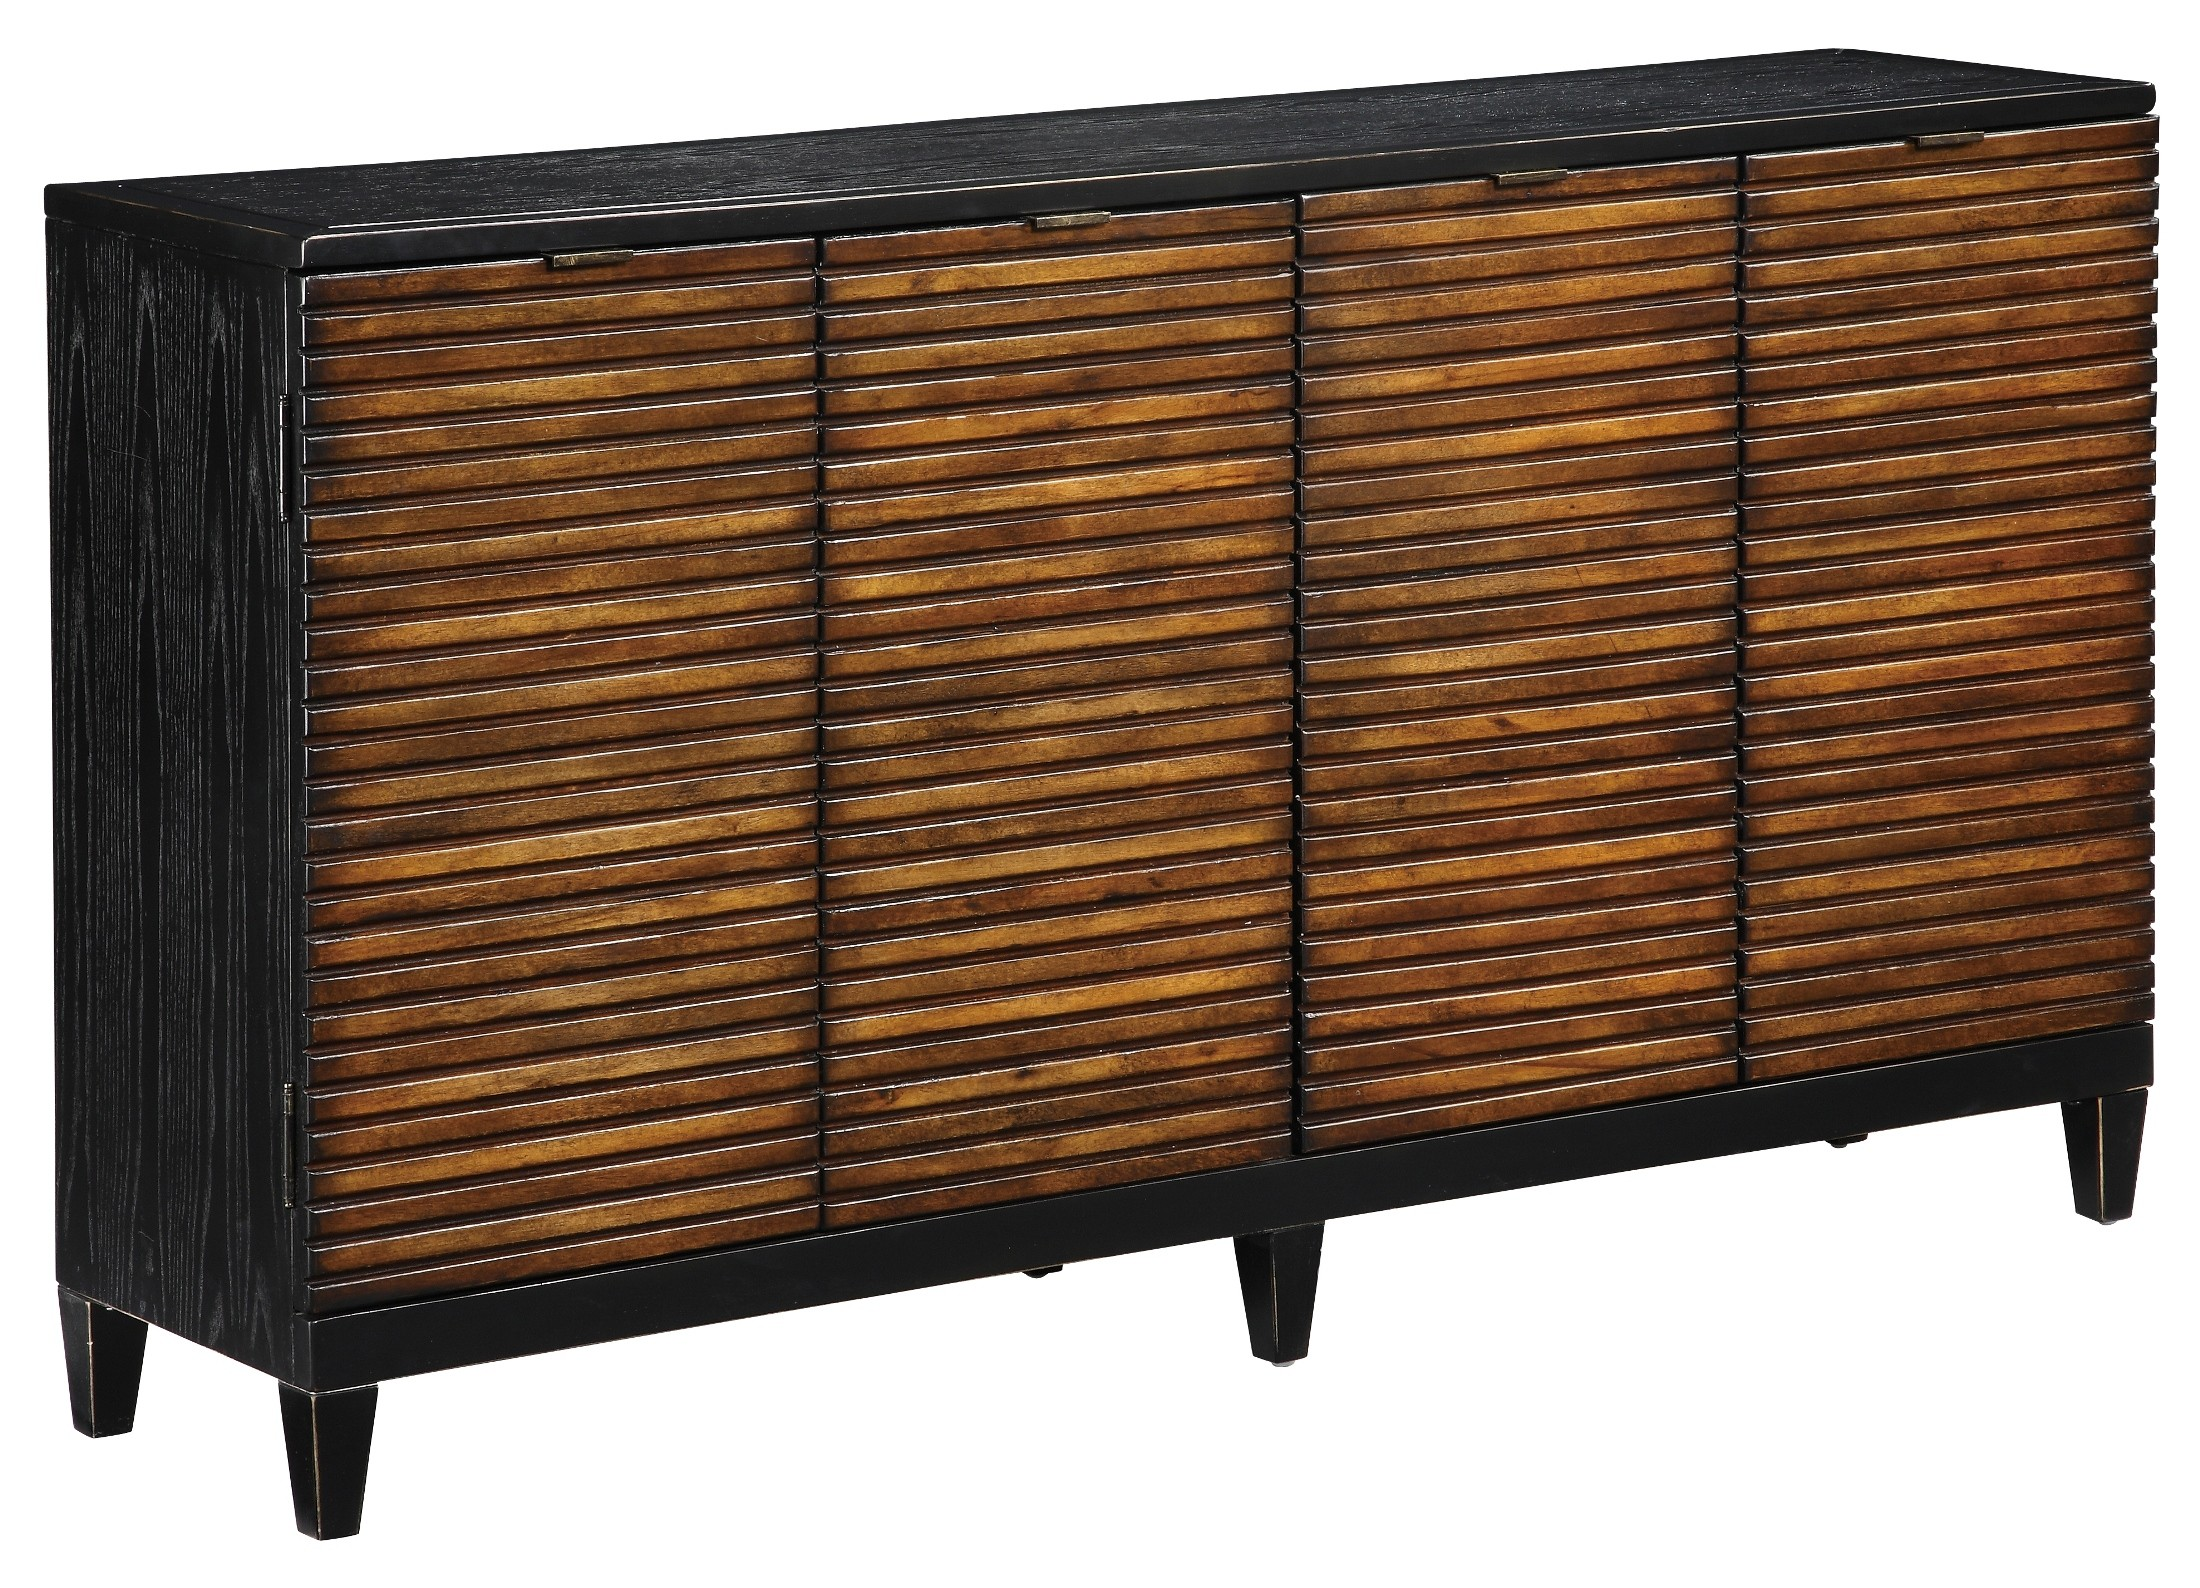 Credenza sideboard media console 14026 from coast to coast for Credenza furniture